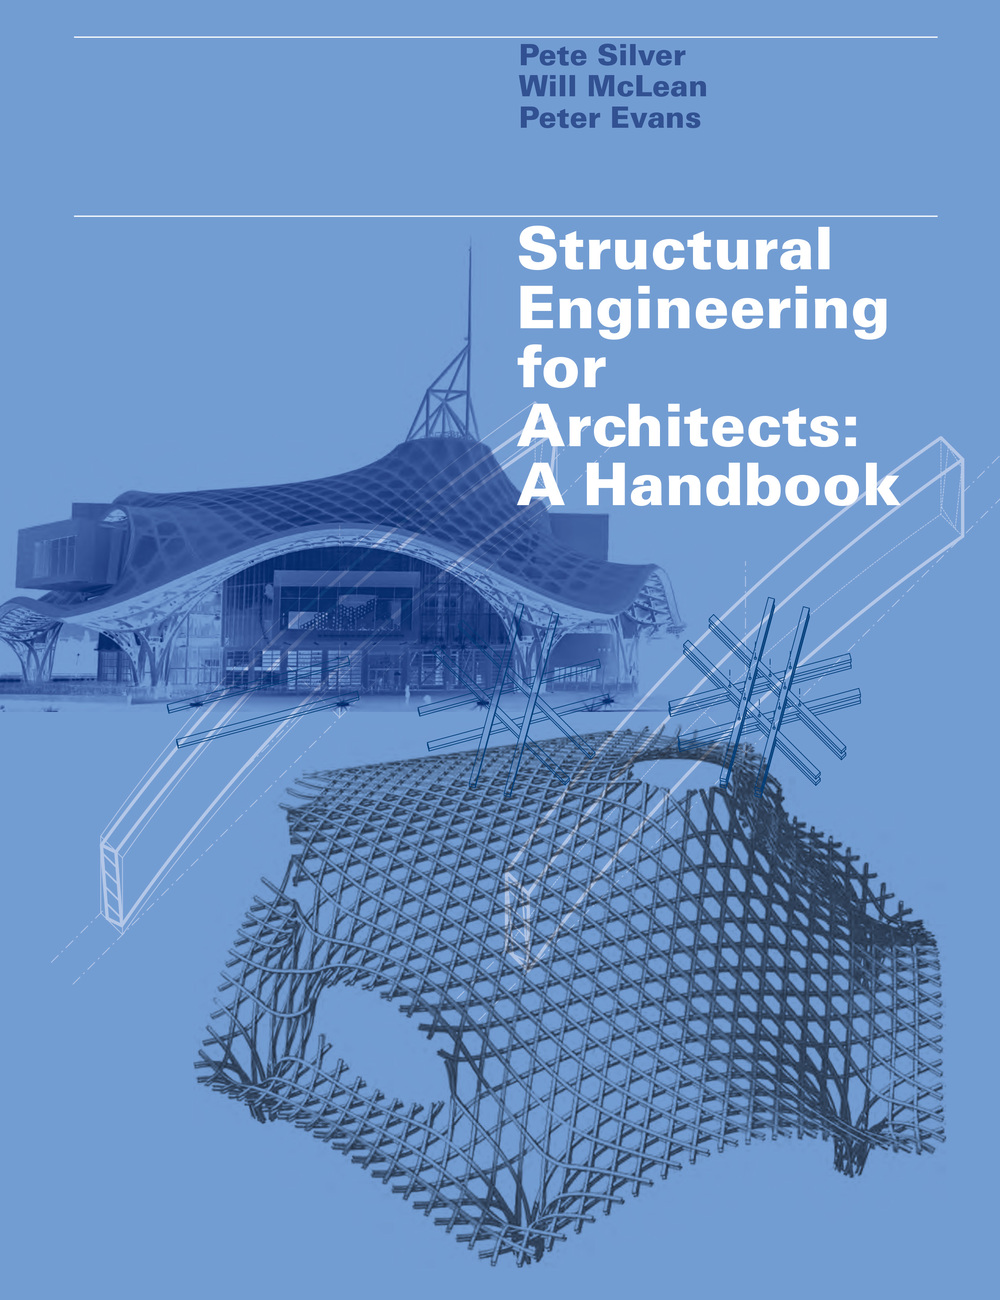 DuBois Santa Fe Structural Engineering Cover.jpg